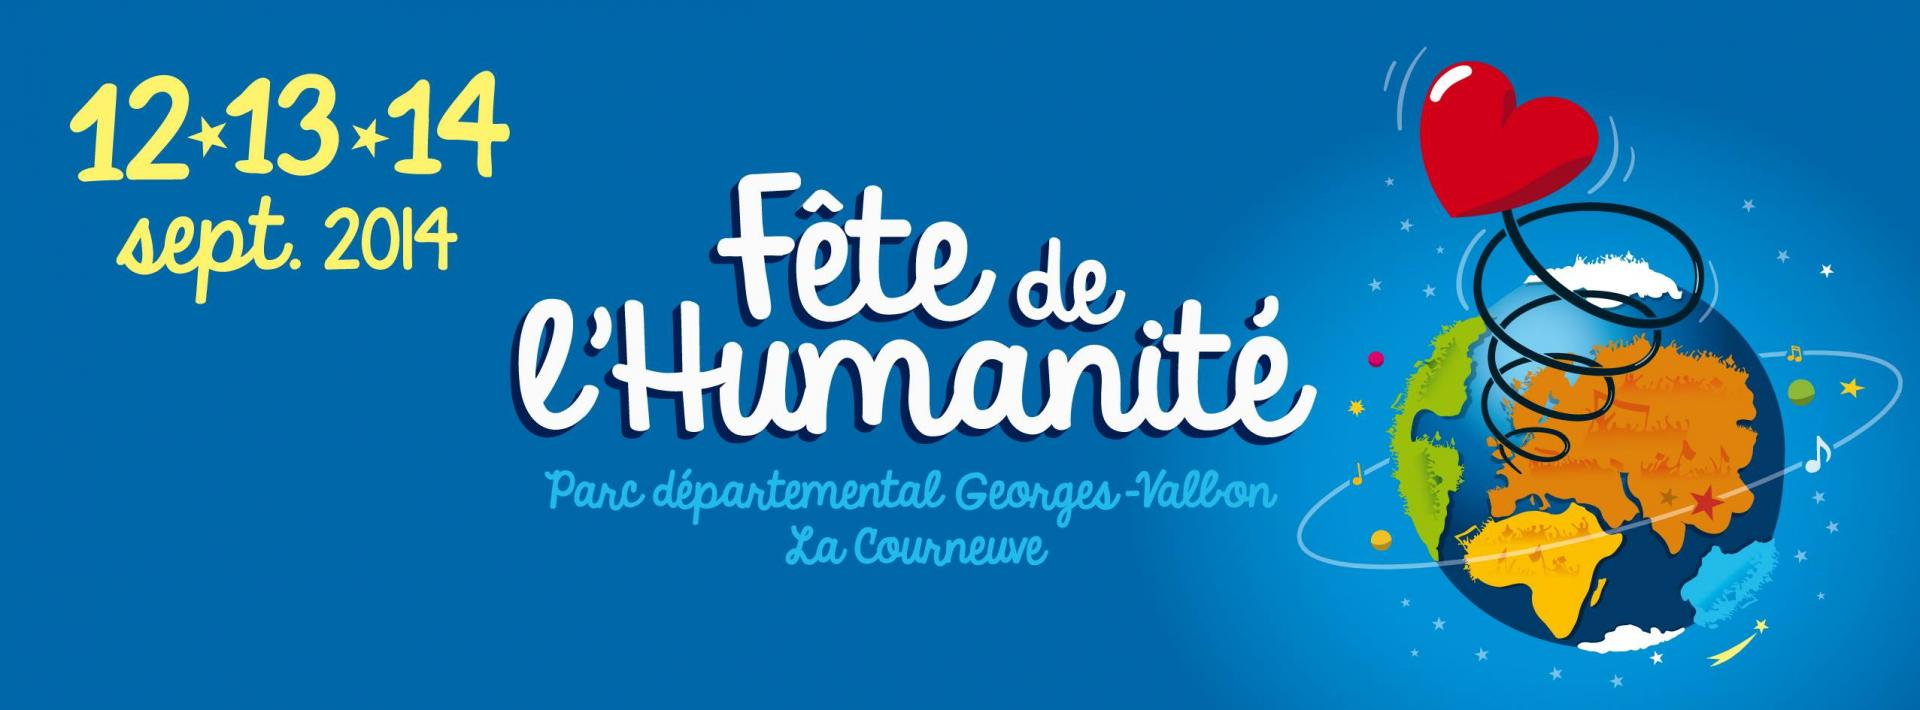 Fetedel humanite